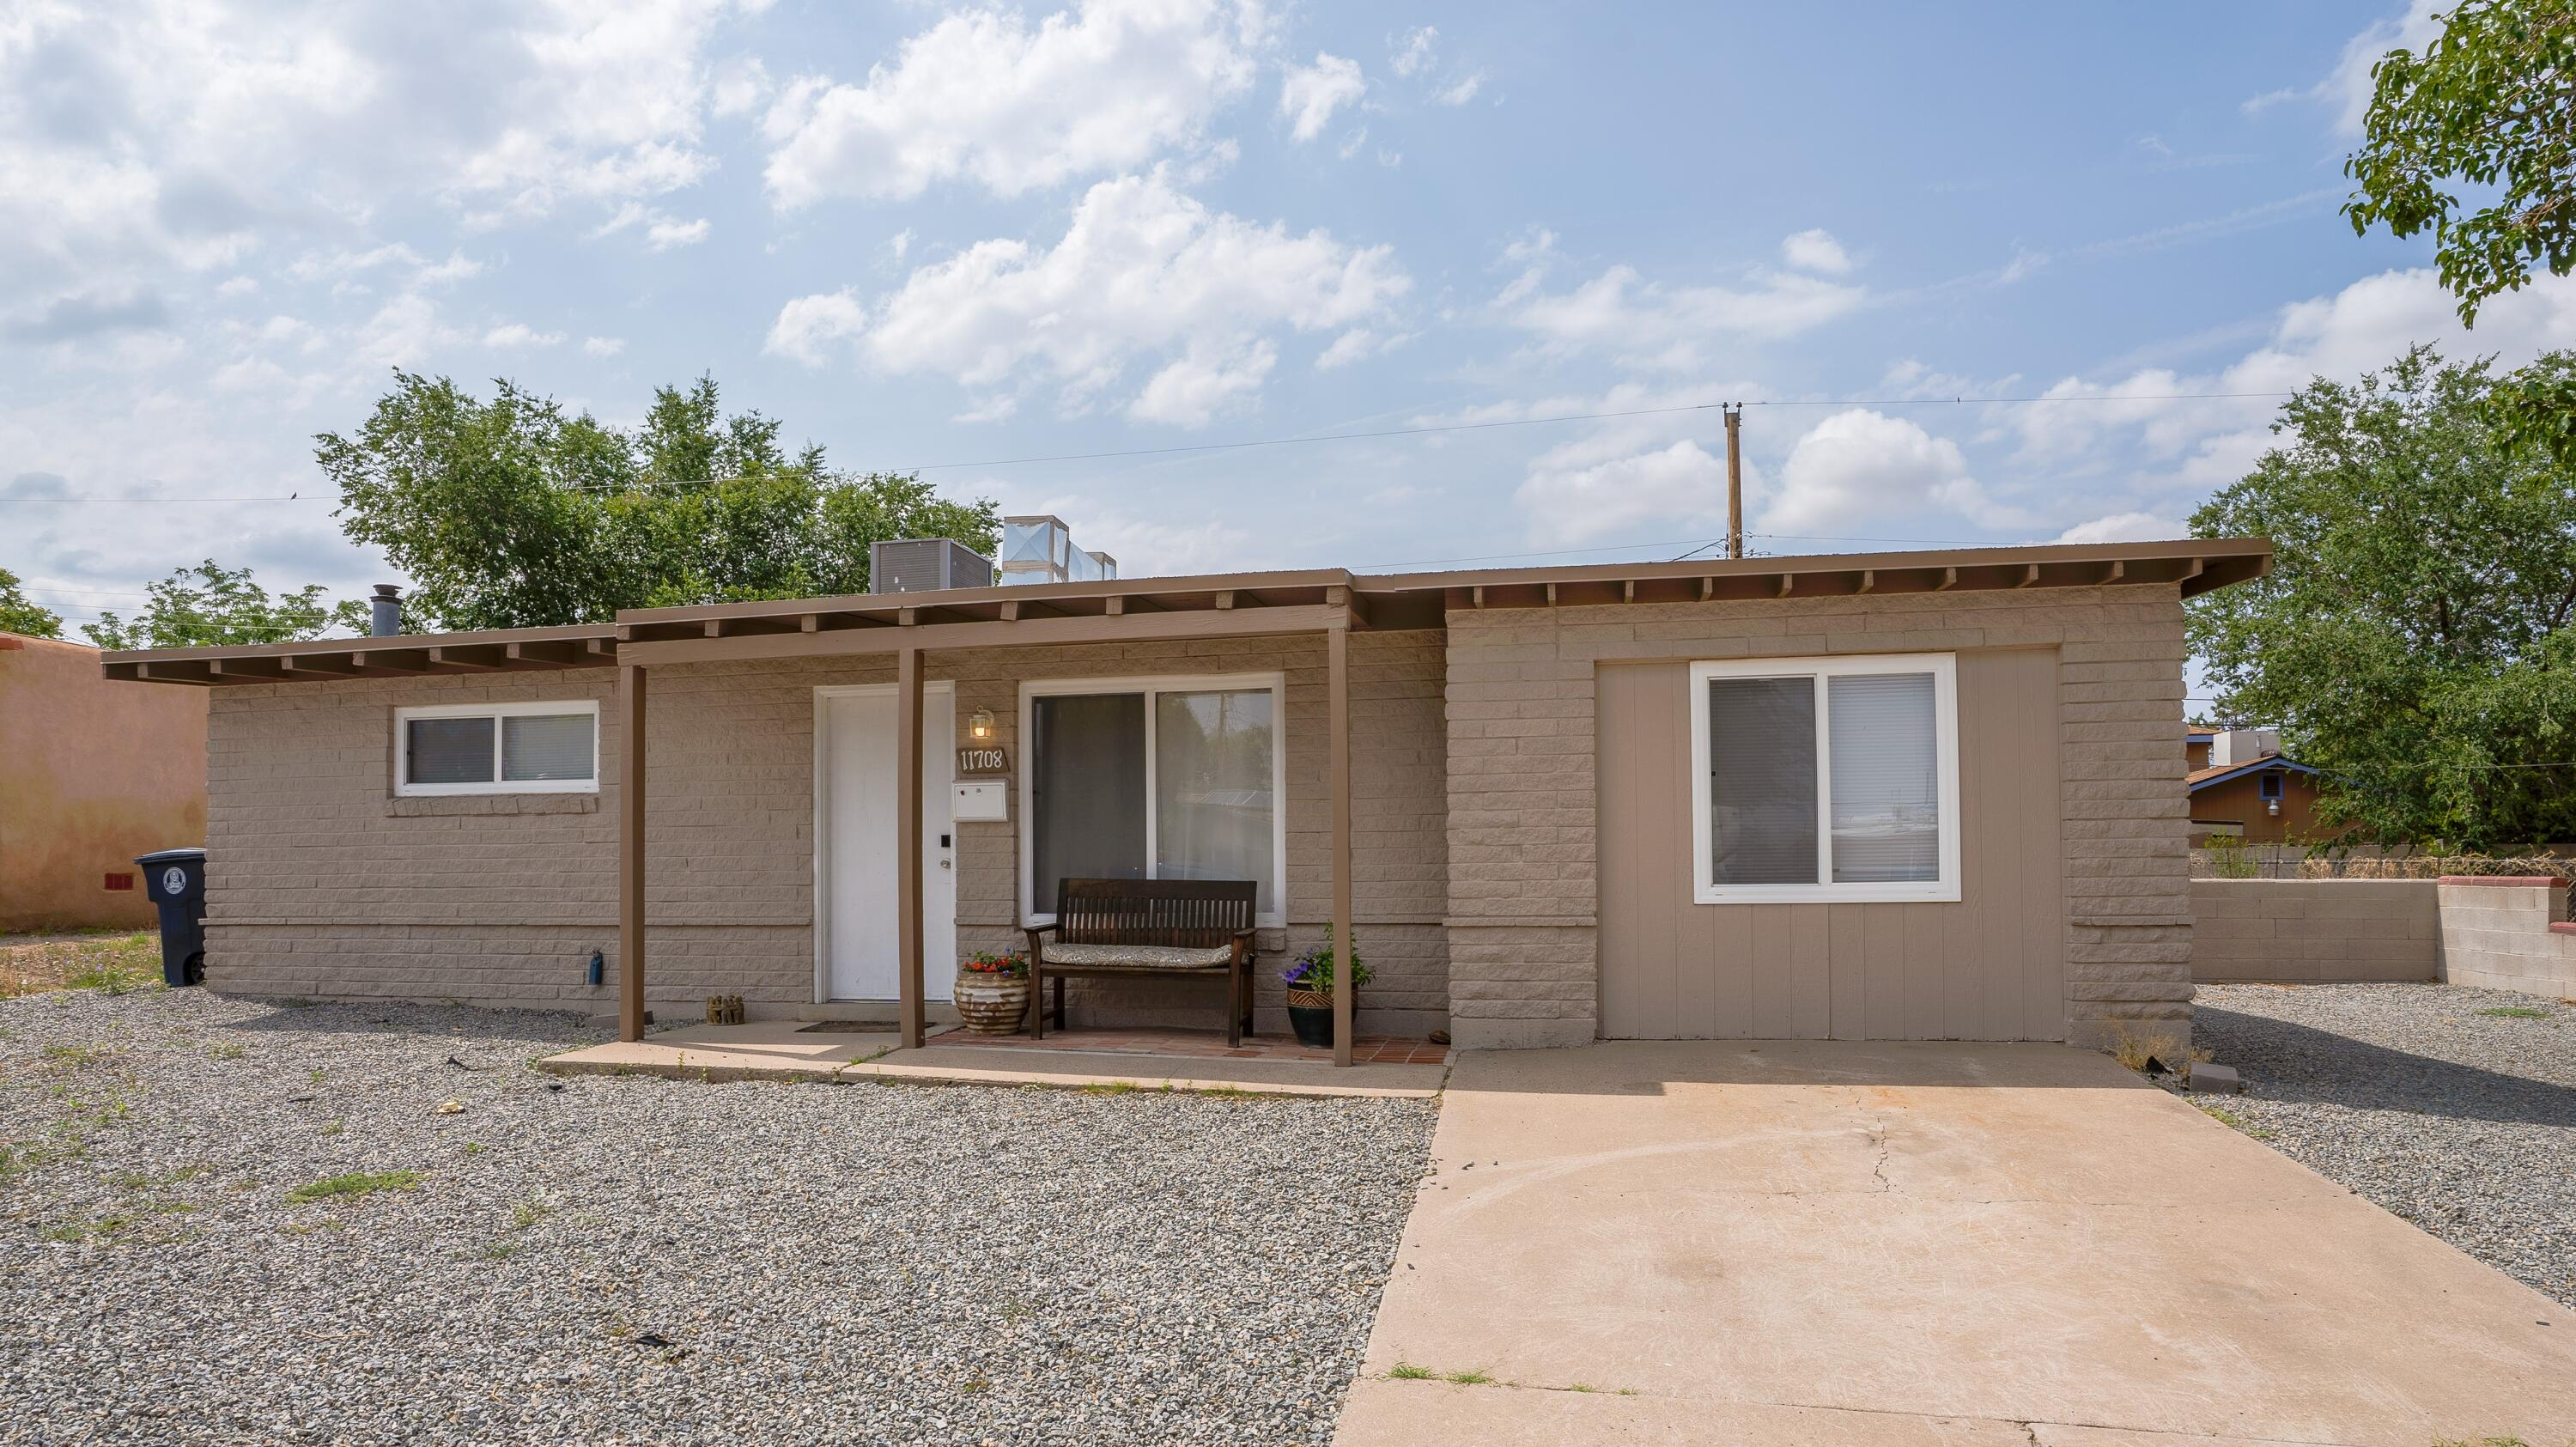 Charming single story, updated home conveniently located close to parks, shopping, freeways and more! Appliances include the refrigerator, dishwasher, microwave and free standing gas range. Updates throughout house include windows, cabinetry, granite counter top in kitchen, heating/cooling unit and flooring. Spacious lot with room to roam. Less than one block away from Jeanne Bellamah Park/Community Center.